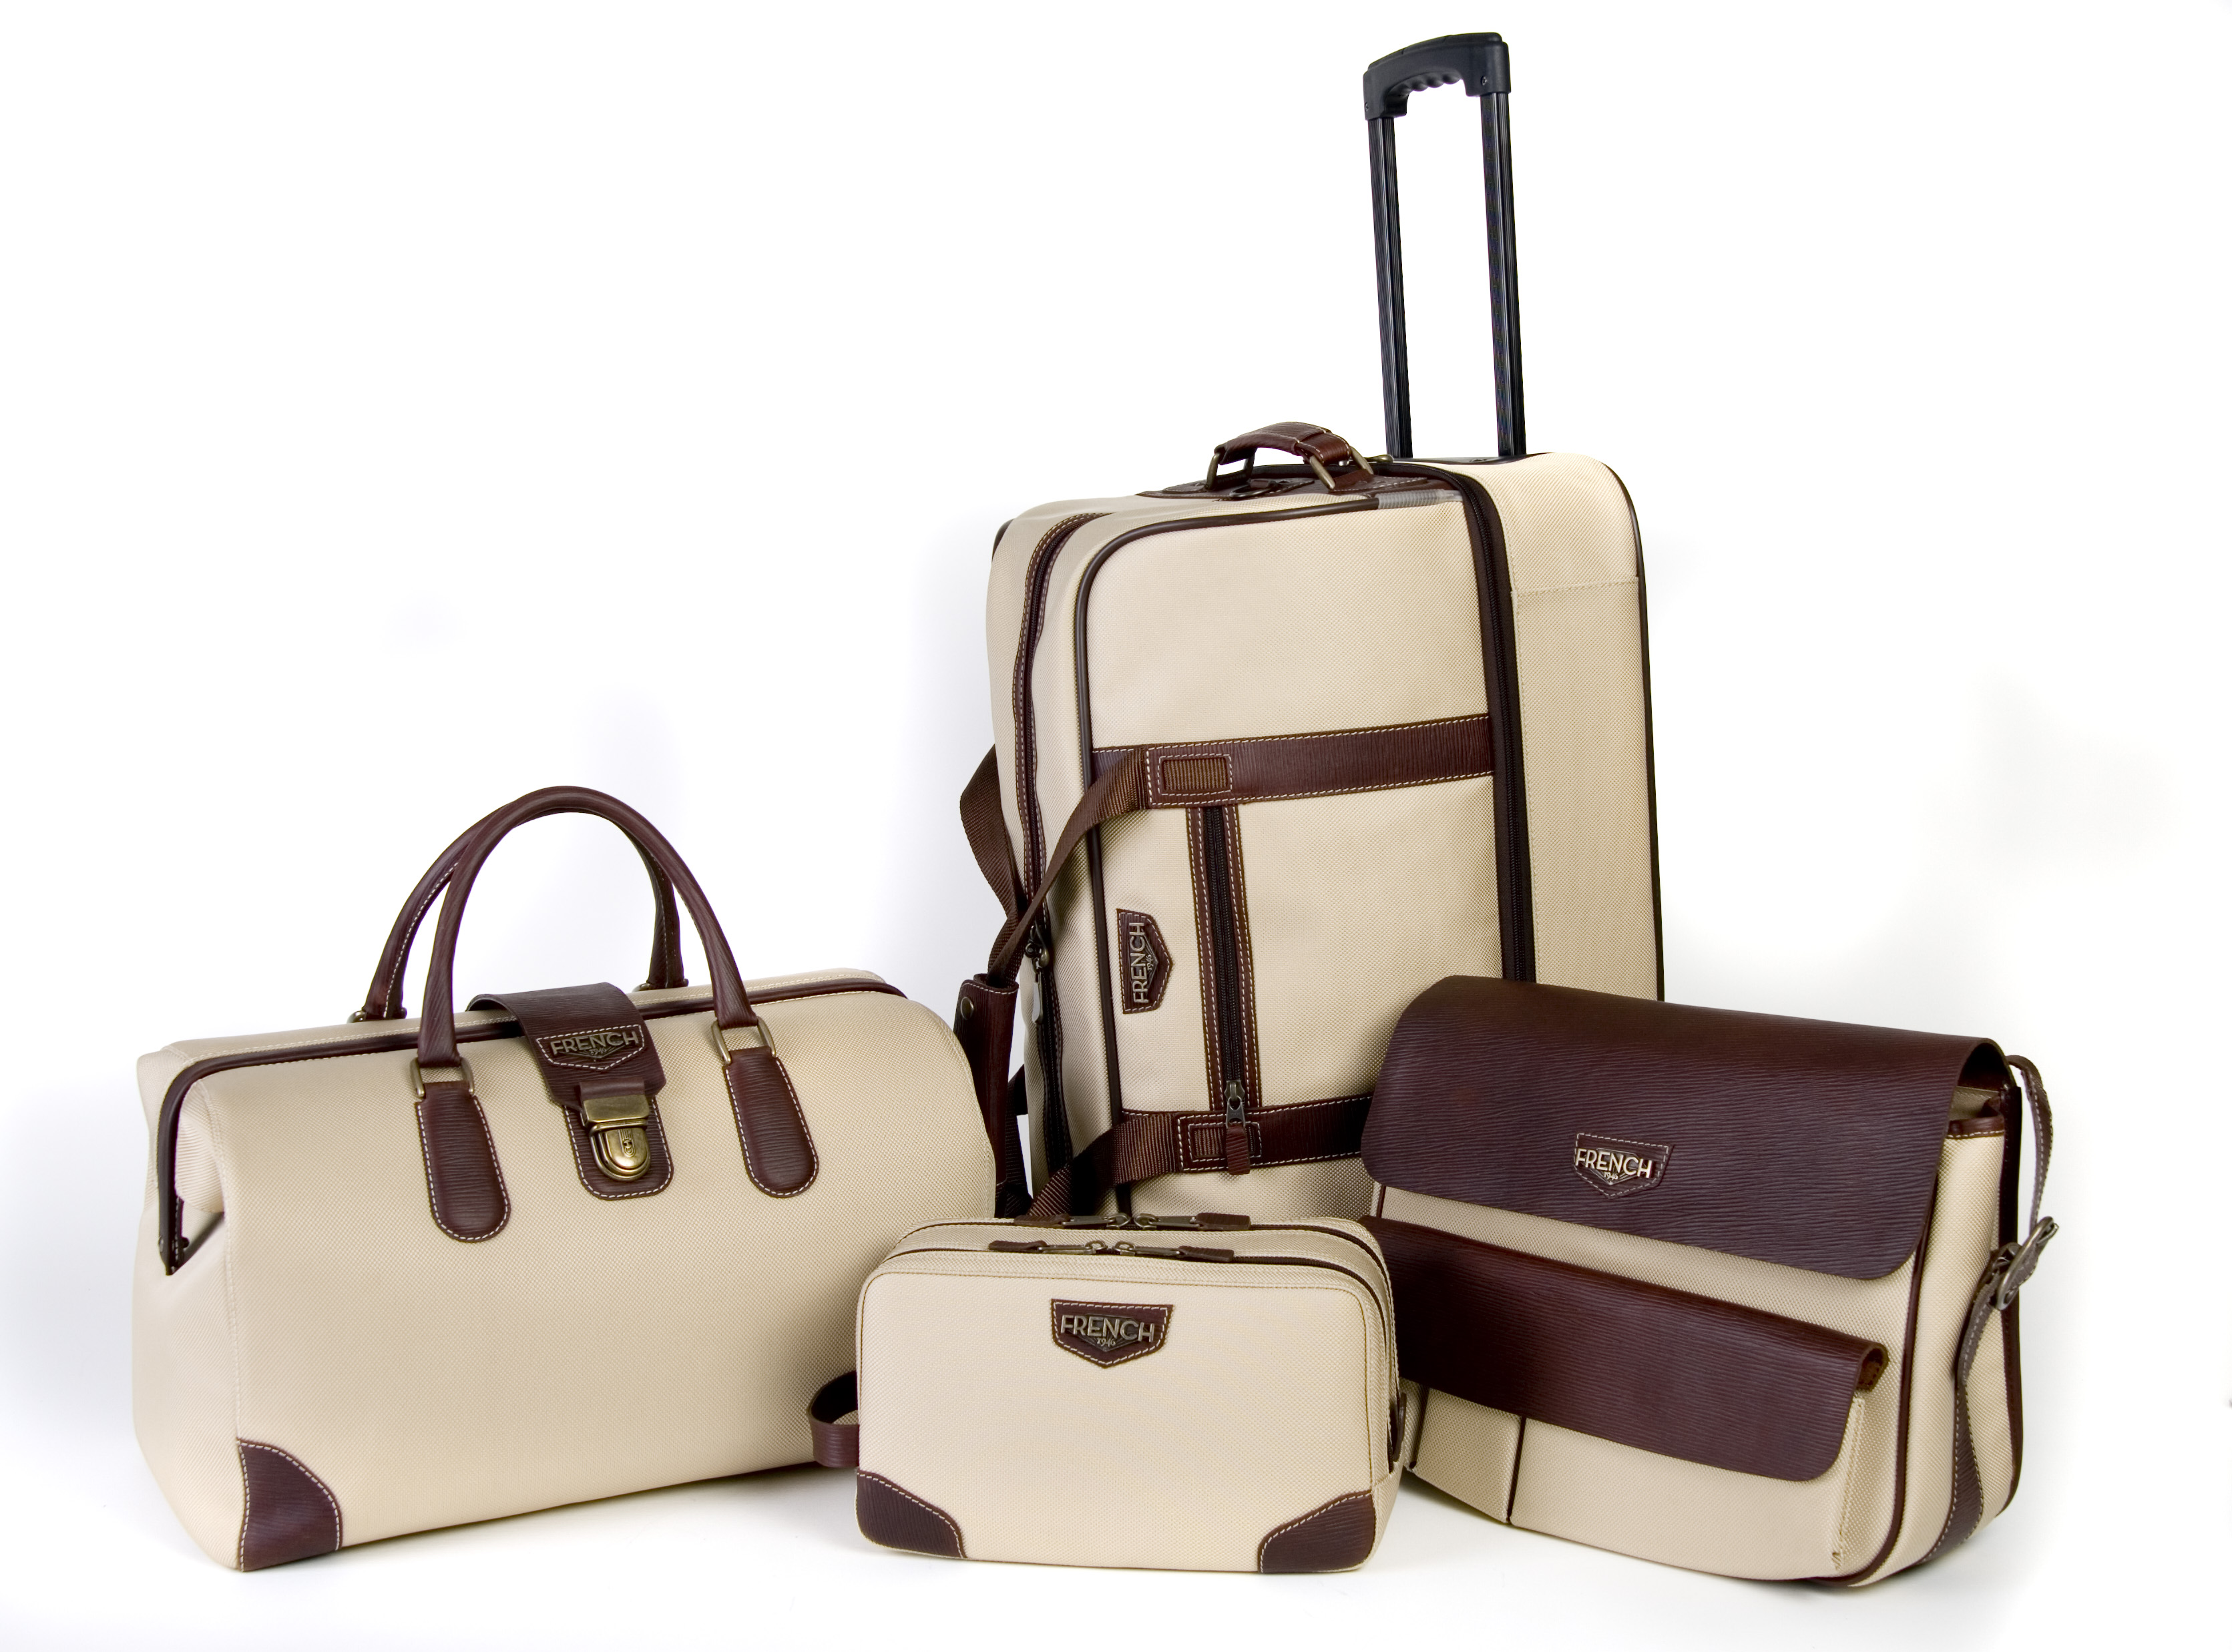 French 1946 Redefines Luxury Luggage